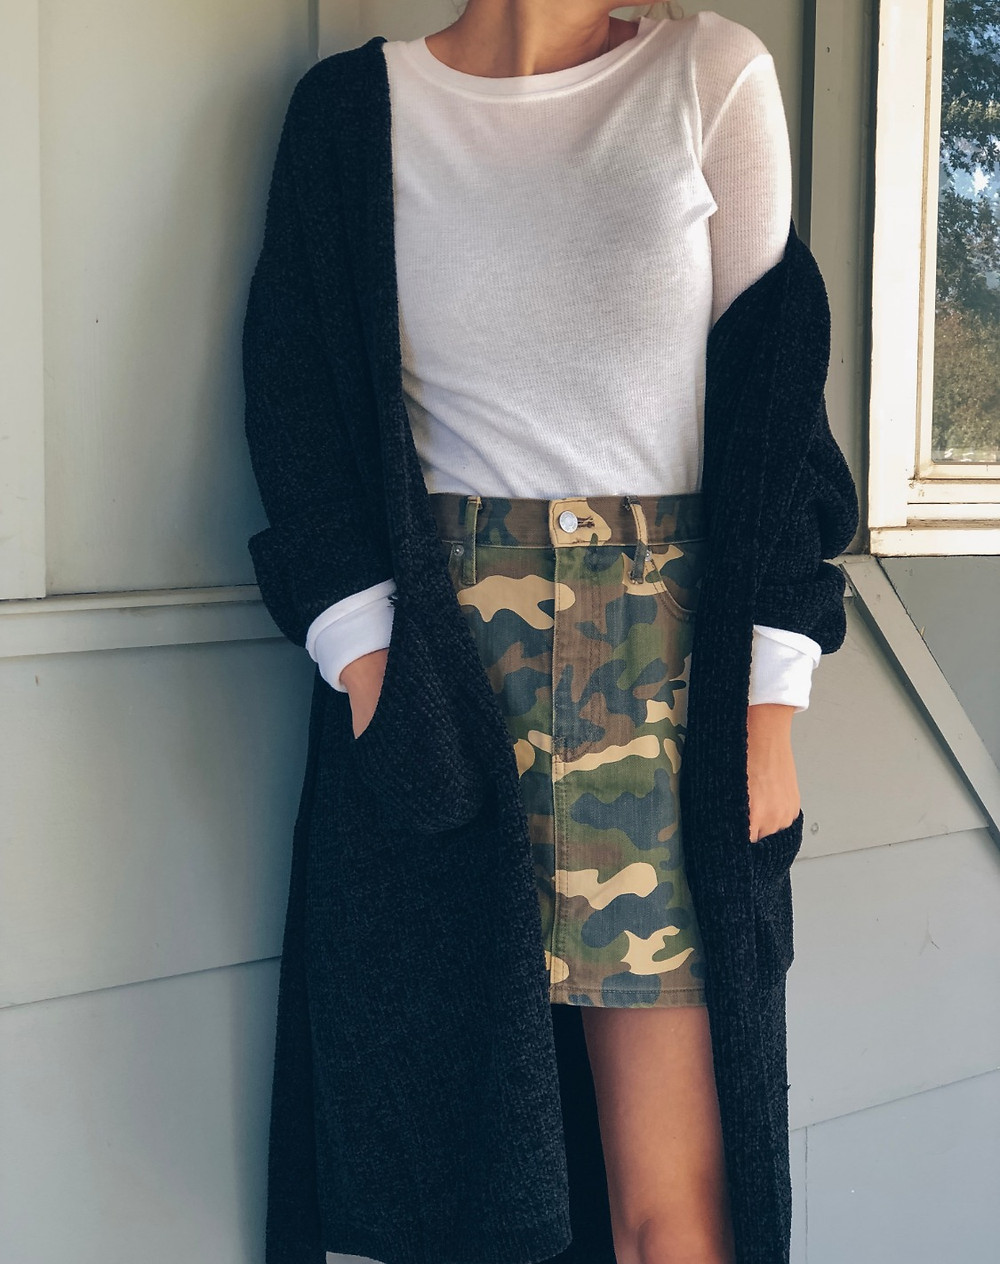 Camo skirt with white long-sleeve and black cardigan